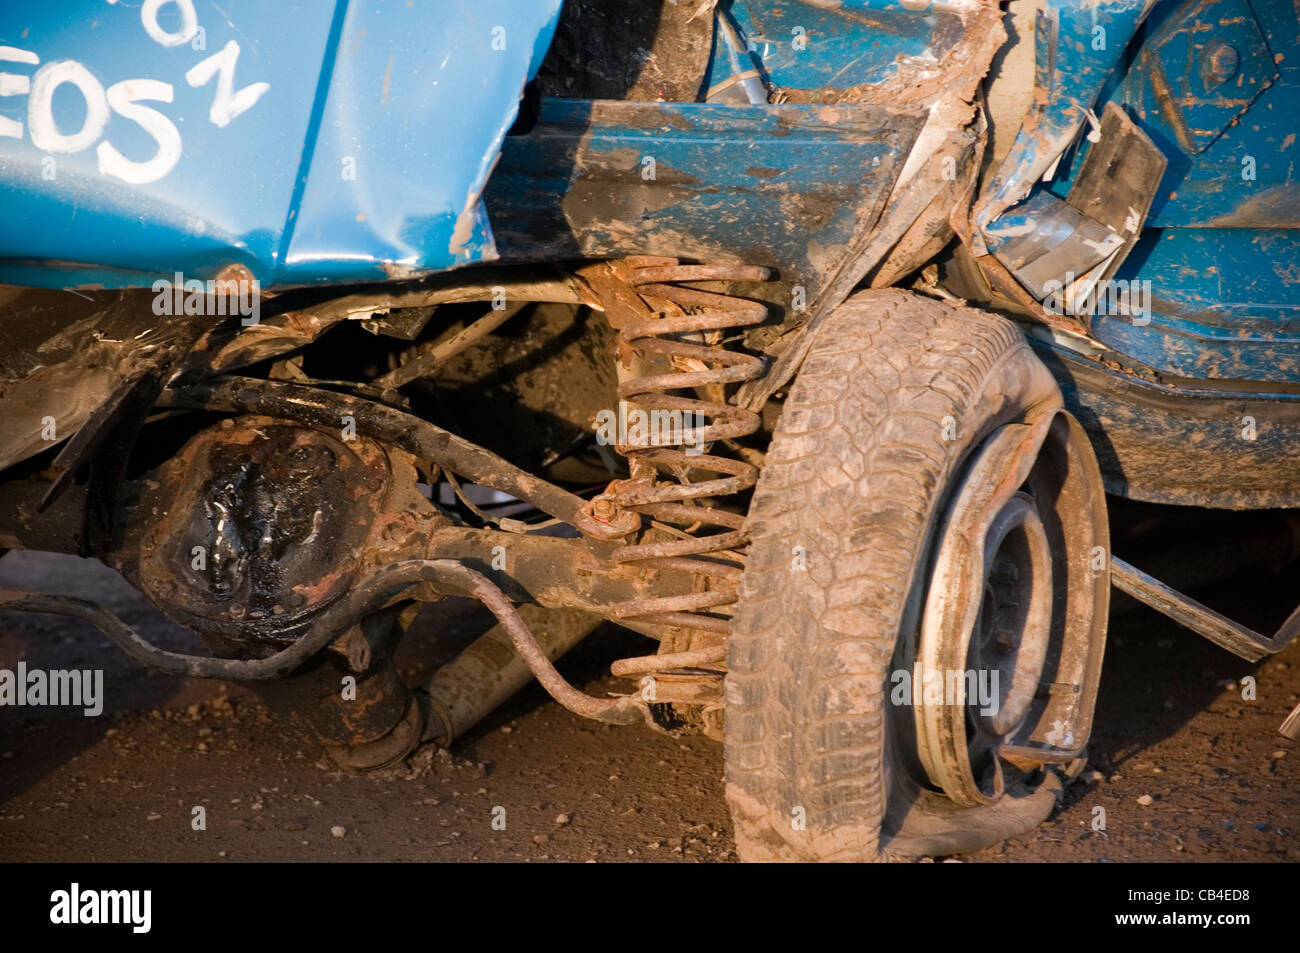 coil spring sprung axle suspension car cars wheel flat tire tyre rear crash crashed bent twisted steel stock banger - Stock Image